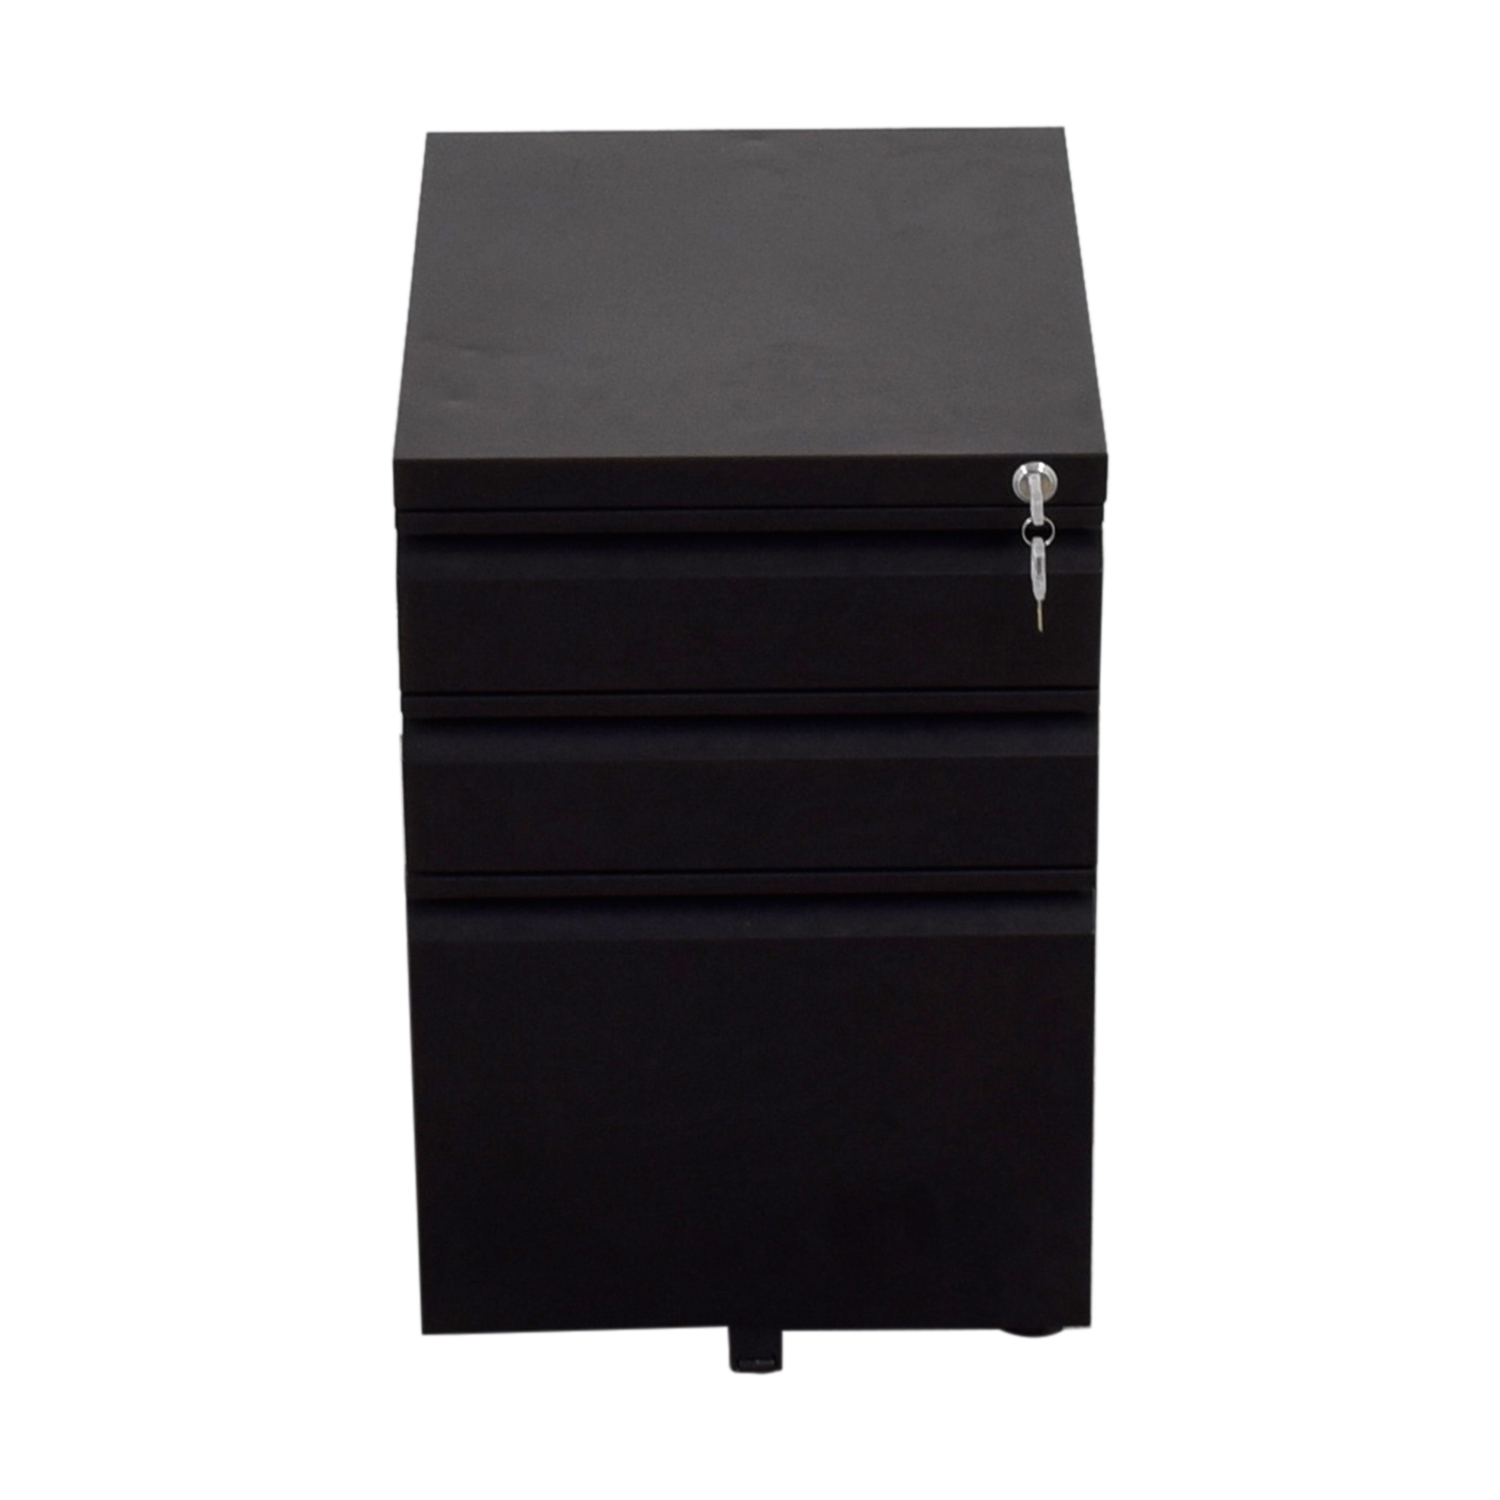 DEVAISE DEVAISE Three-Drawer Black Metal File Cabinet with Lock price